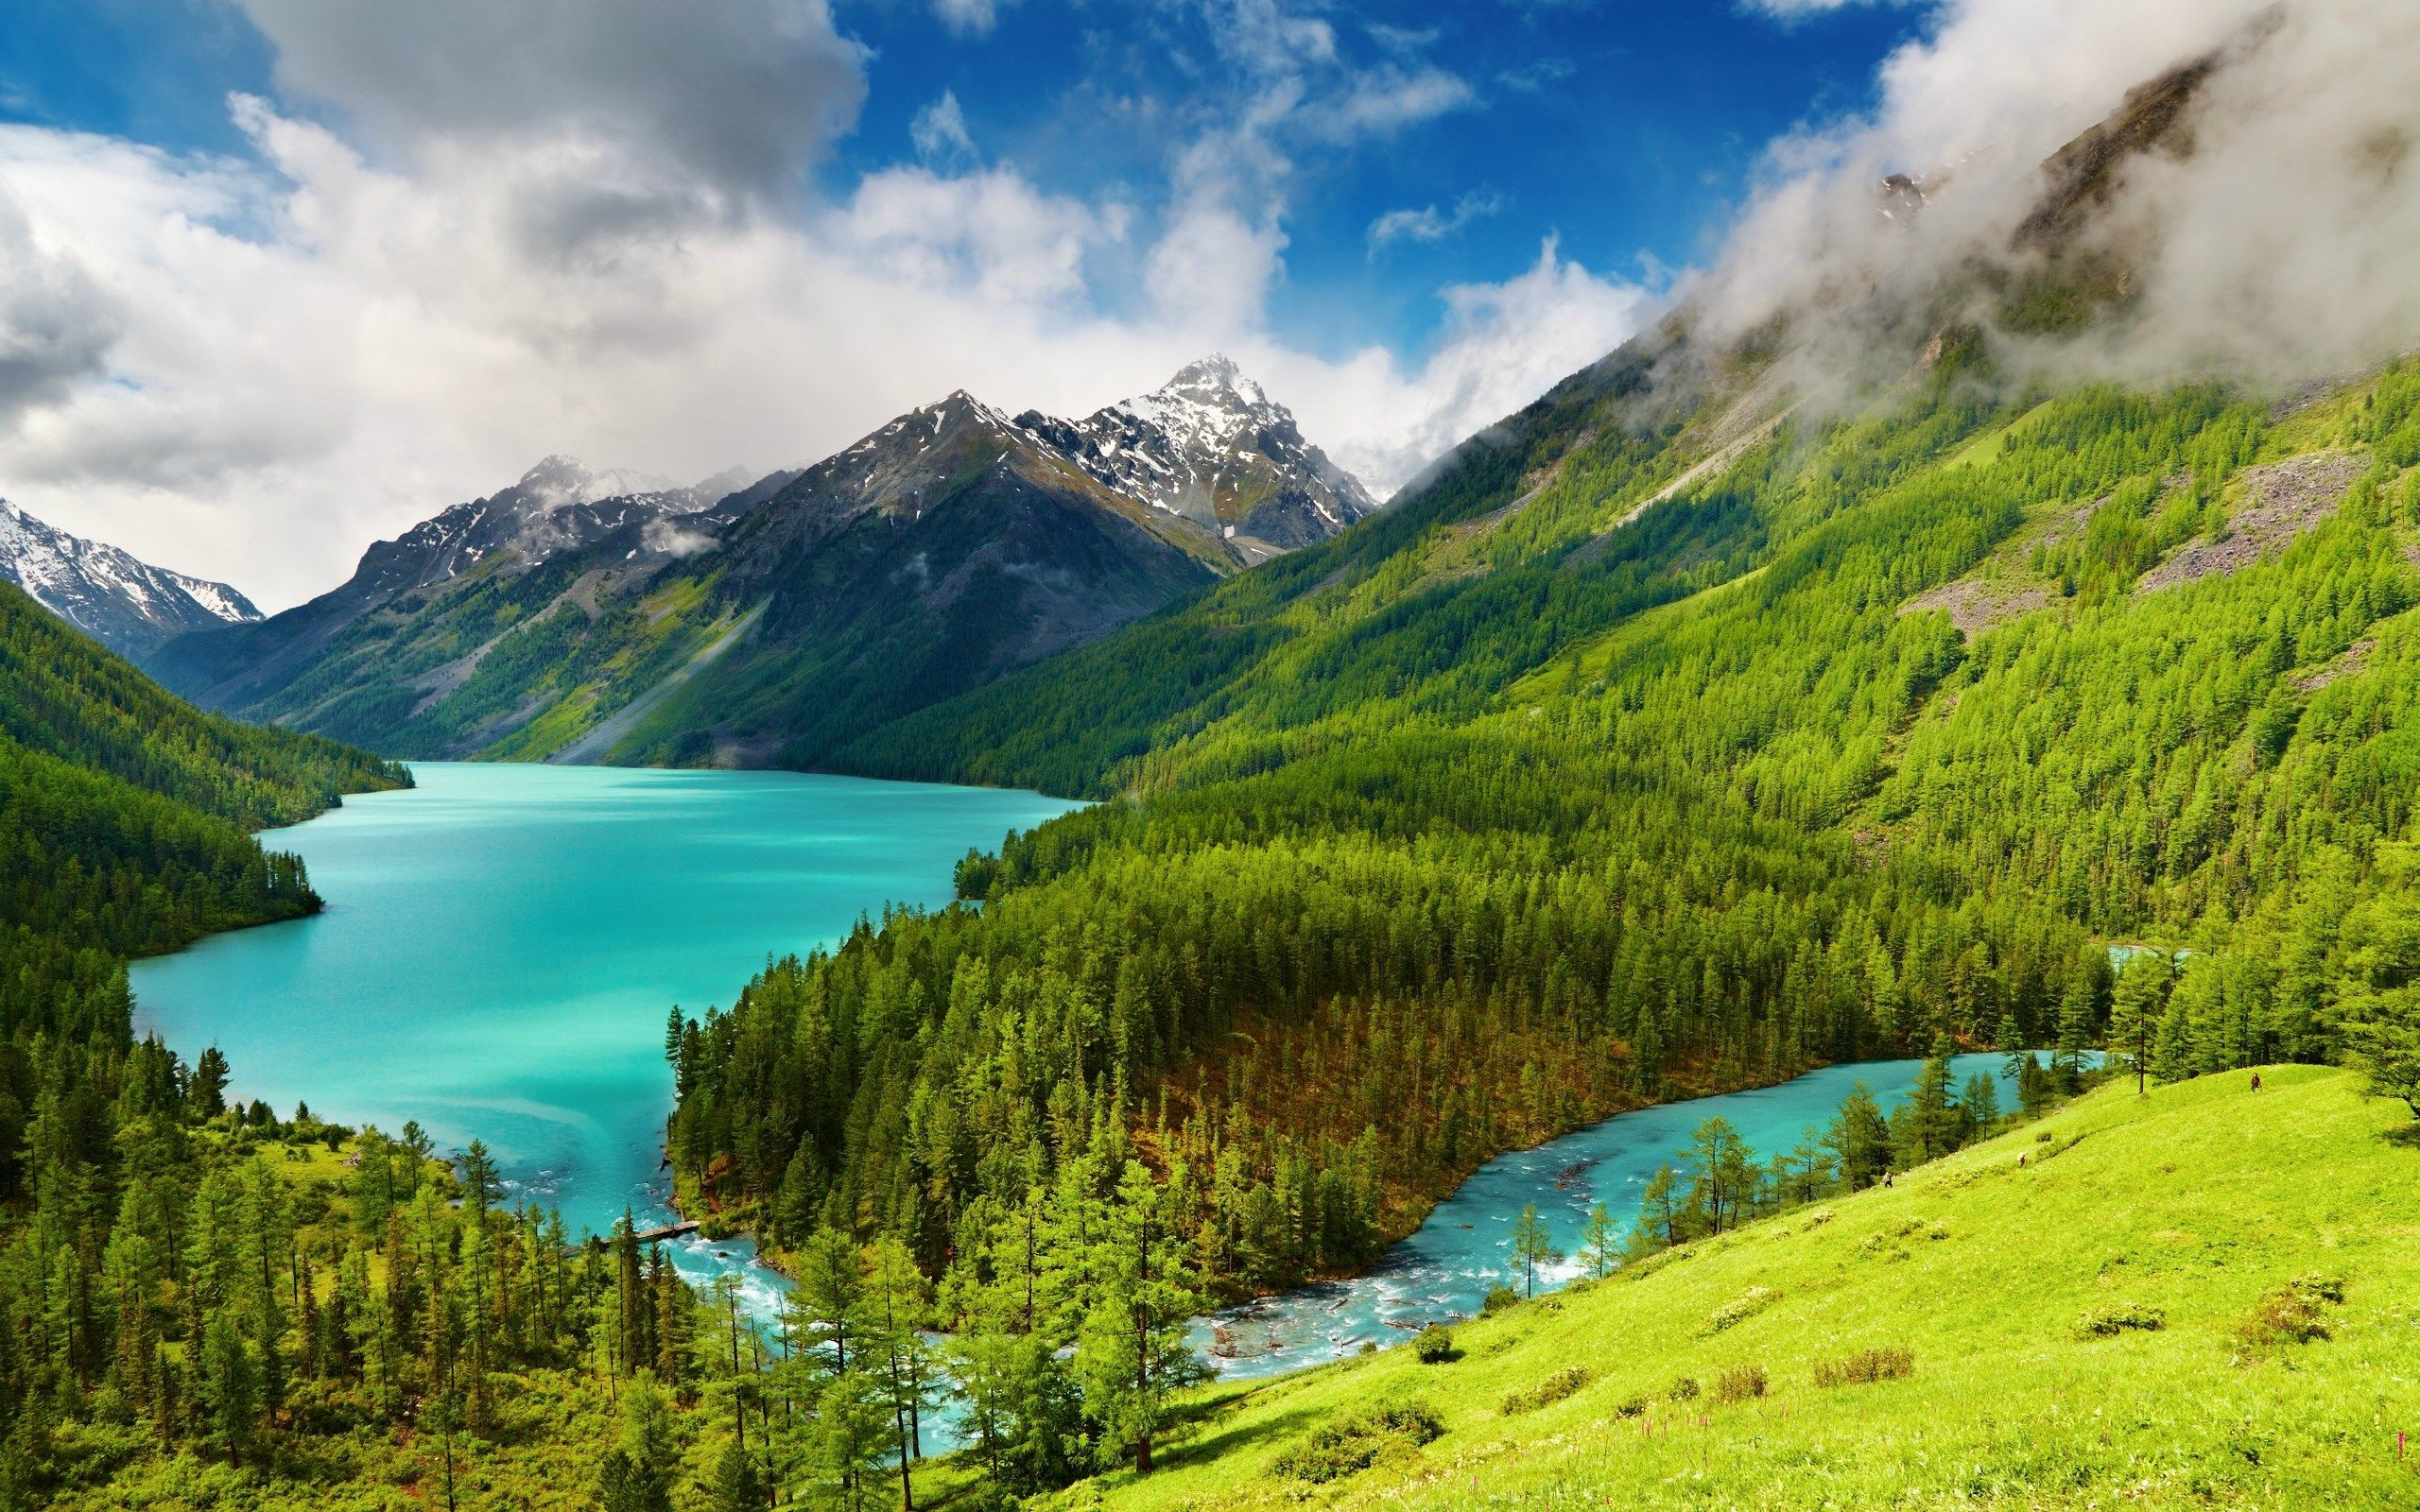 Nature Wallpapers High Resolution Widescreen Computer Download Hd Nature Wallpaper Scenery Beautiful Nature